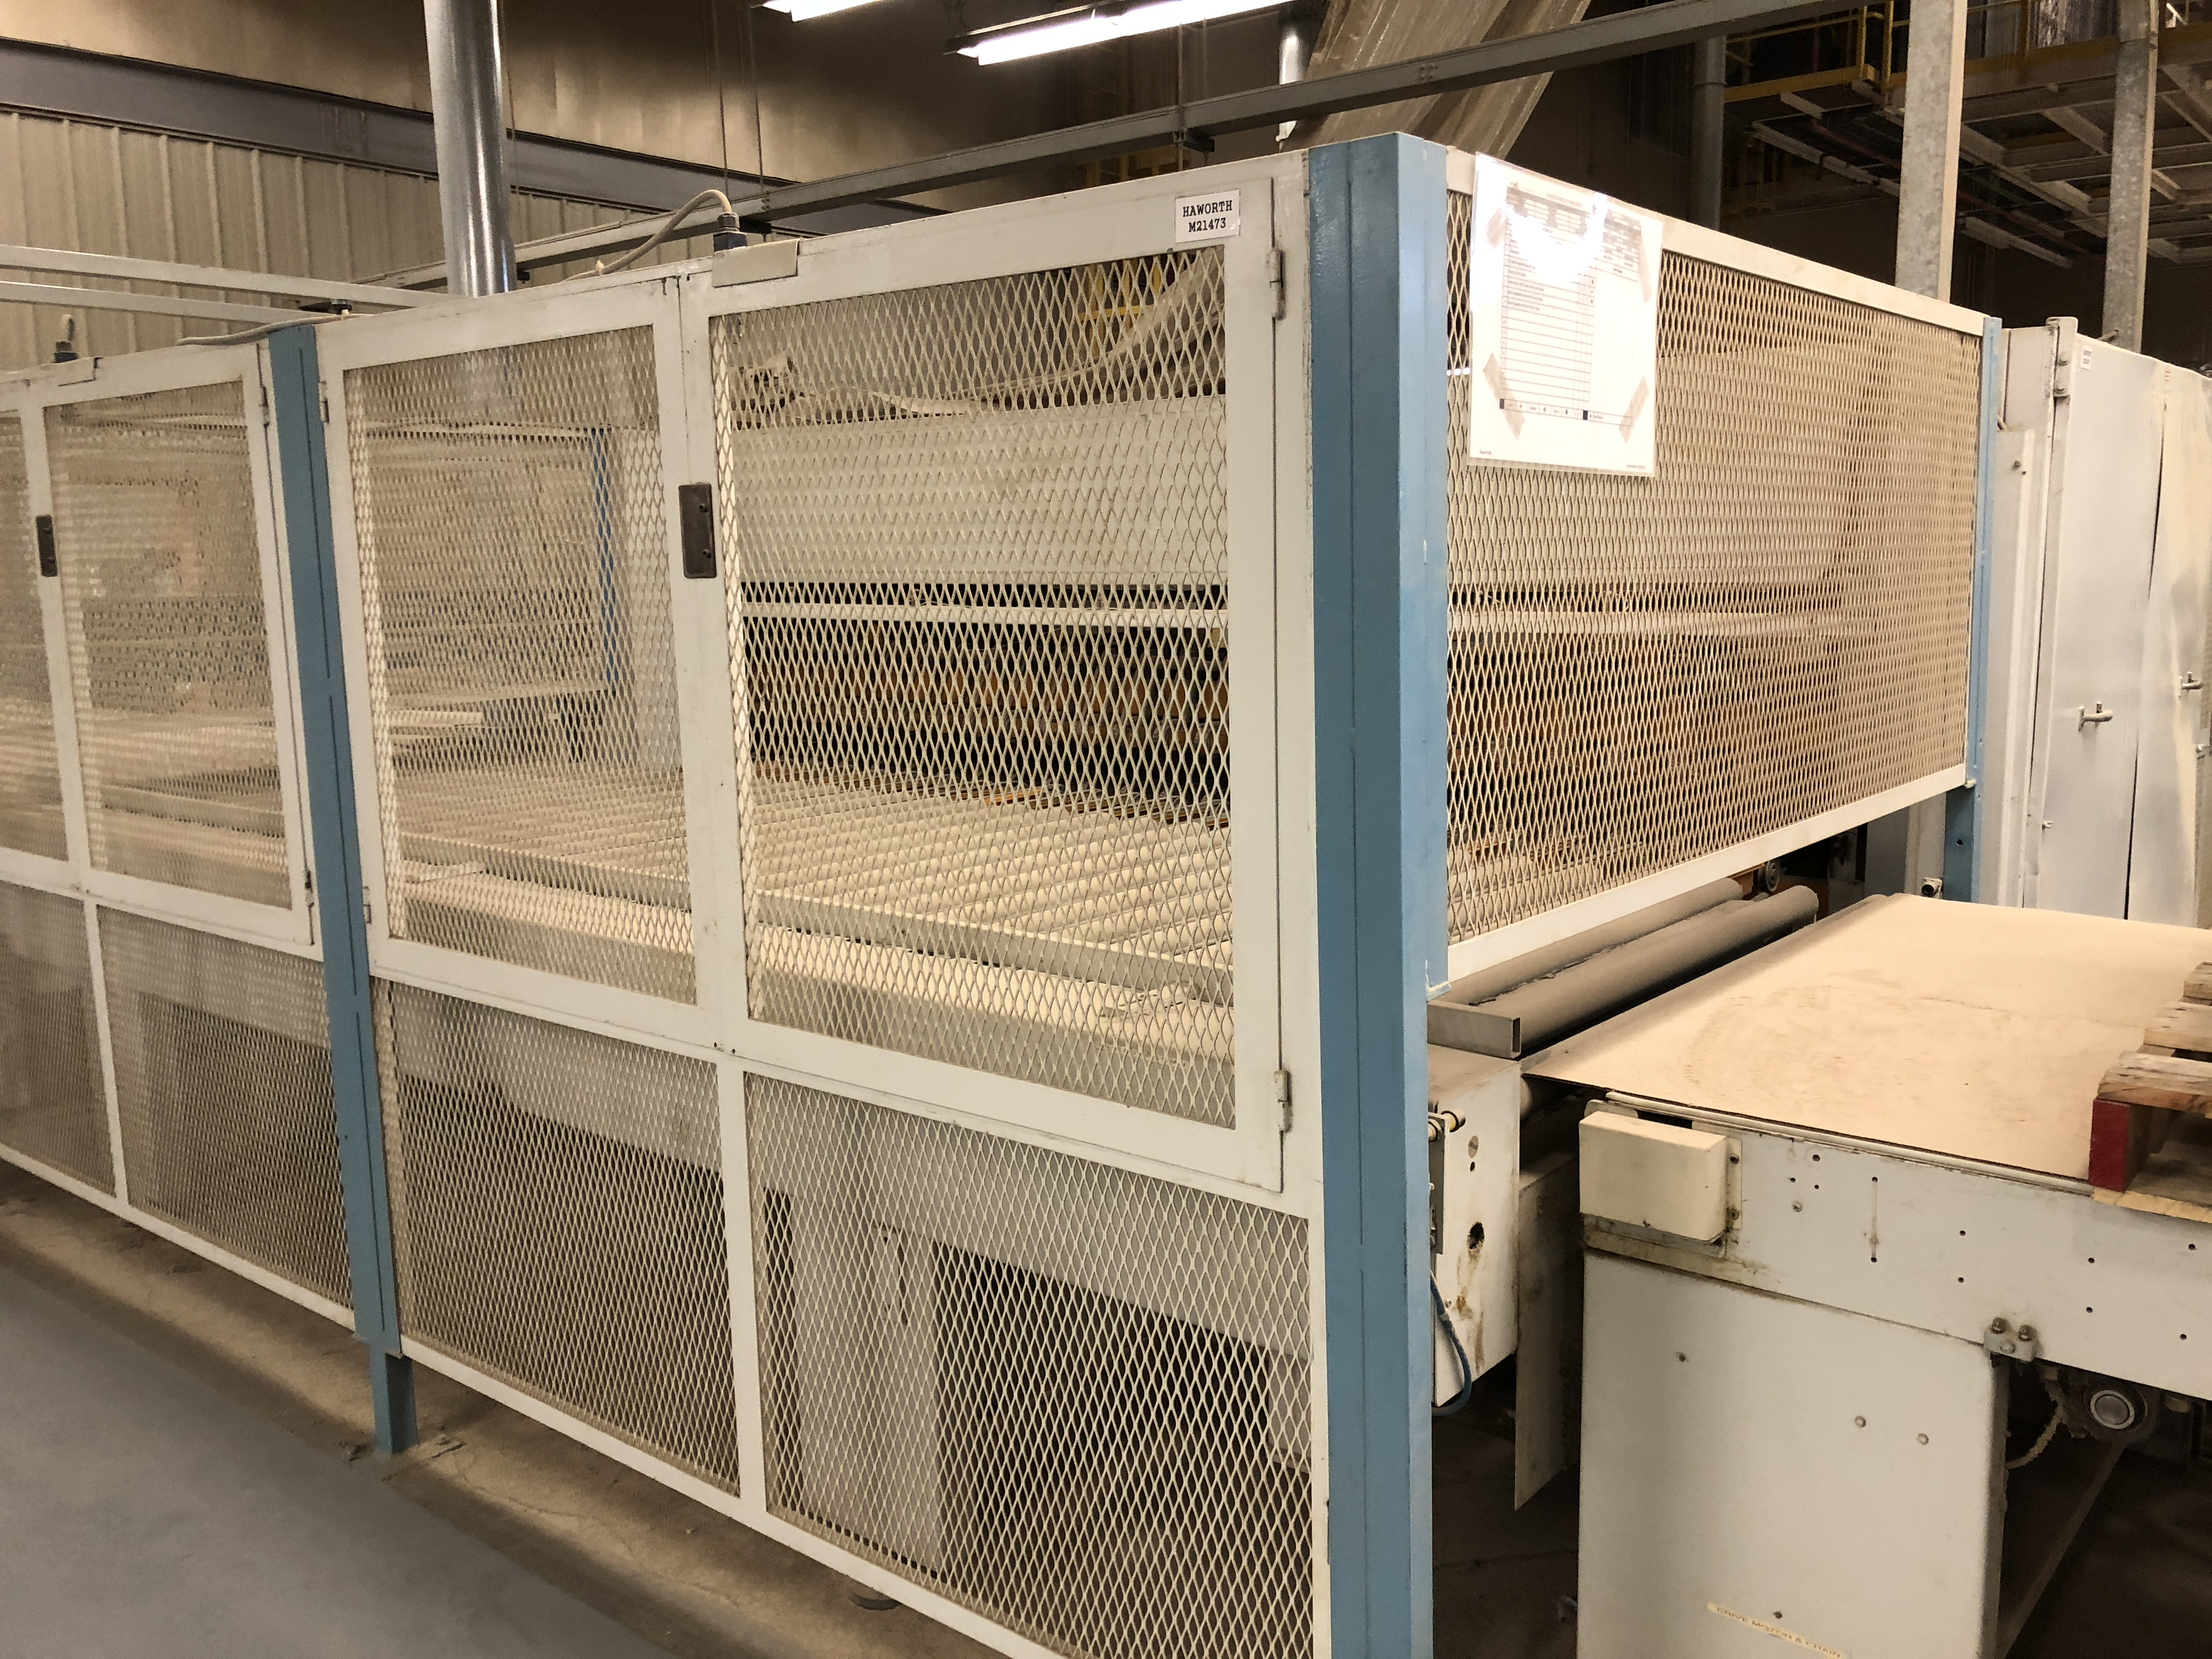 CEFLA PANEL FLIPPER (WITH INFEED AND OUTFEED BELT CONVEYORS) - Image 10 of 11